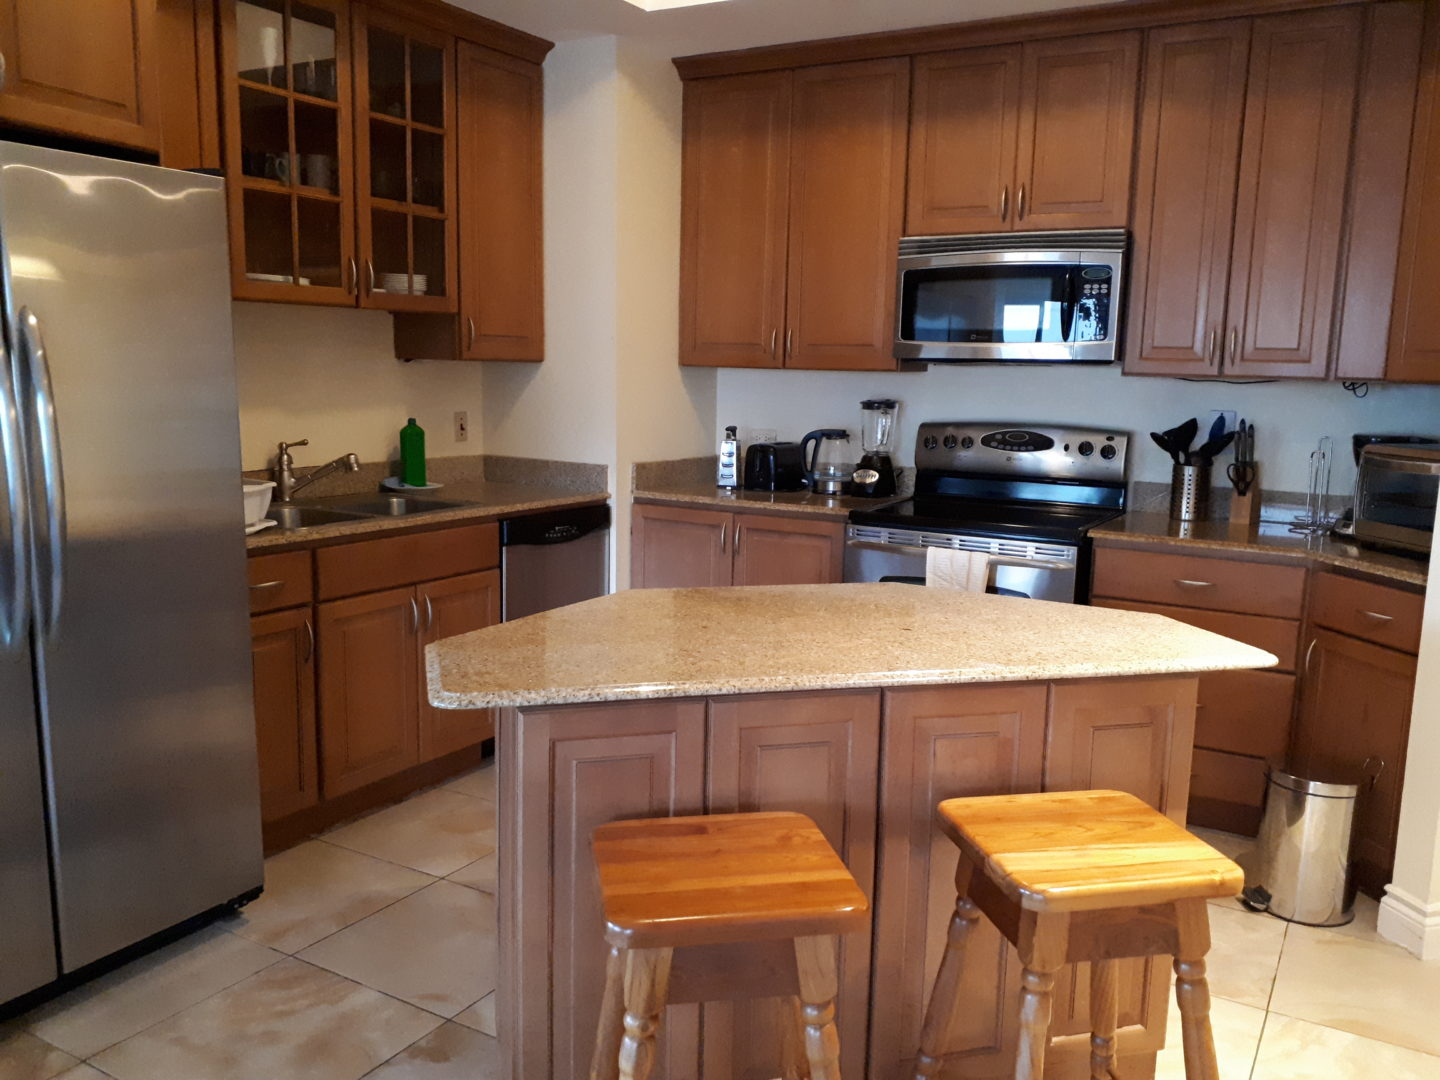 One Wood Brook Place  Executive Condo 7th Floor 3 bedroom  Rent $2800 USD